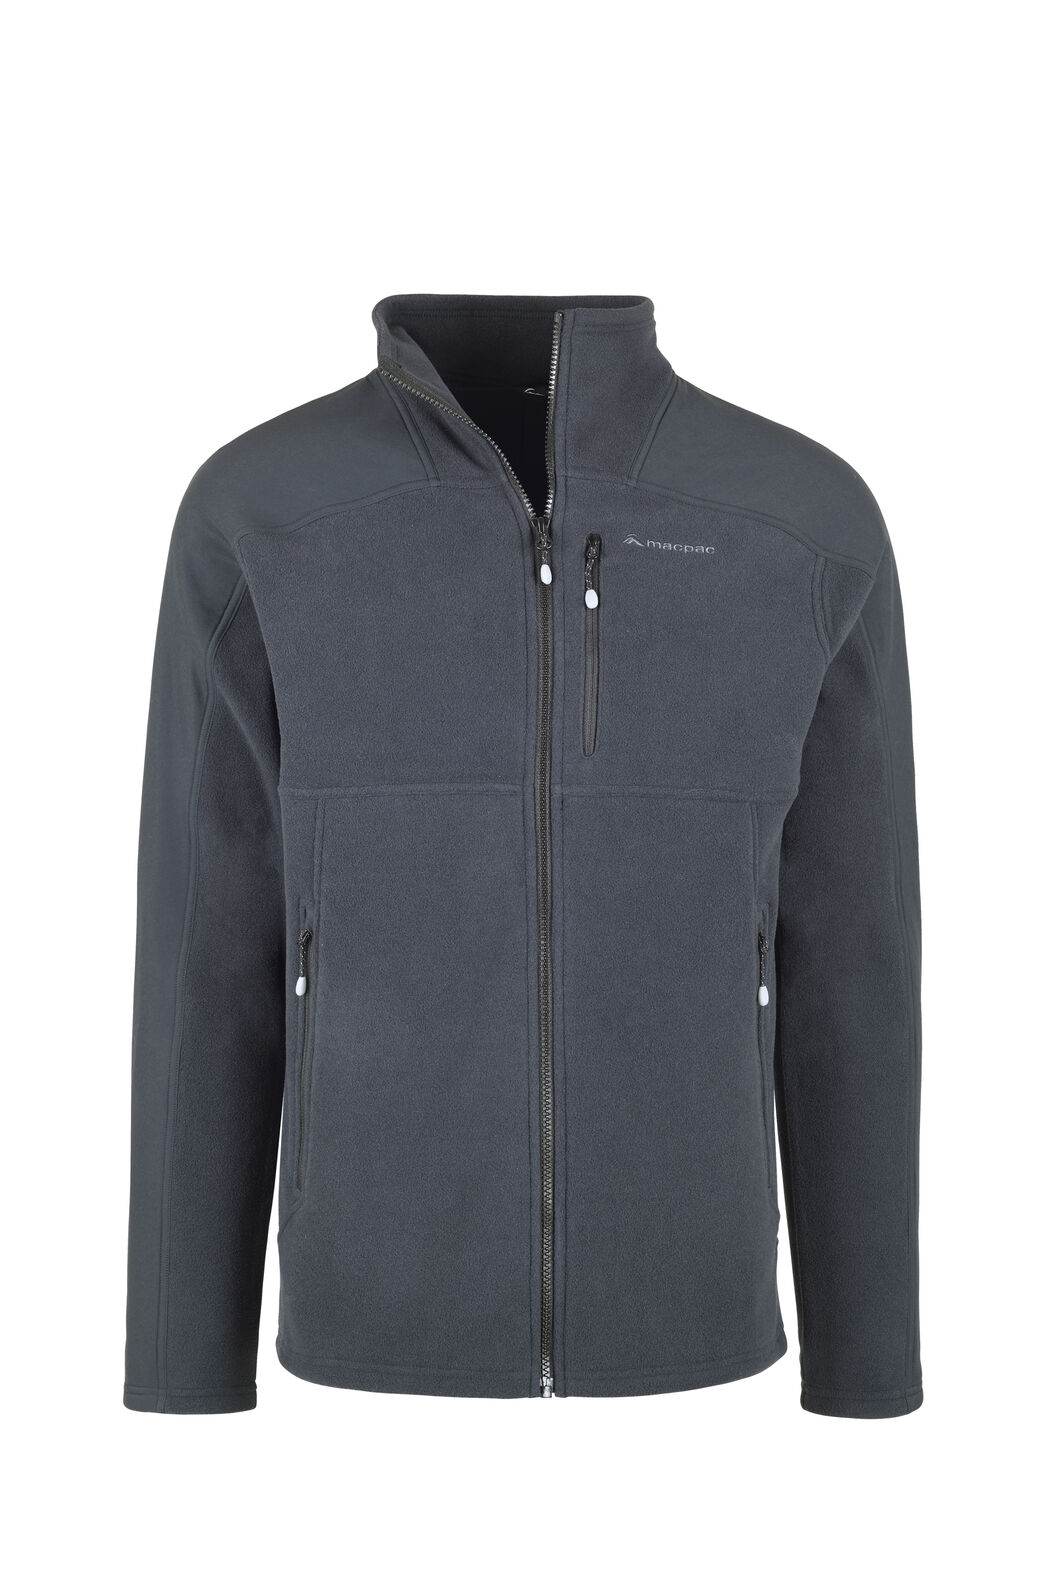 Macpac Dunstan Fleece - Men's, Black/Black, hi-res